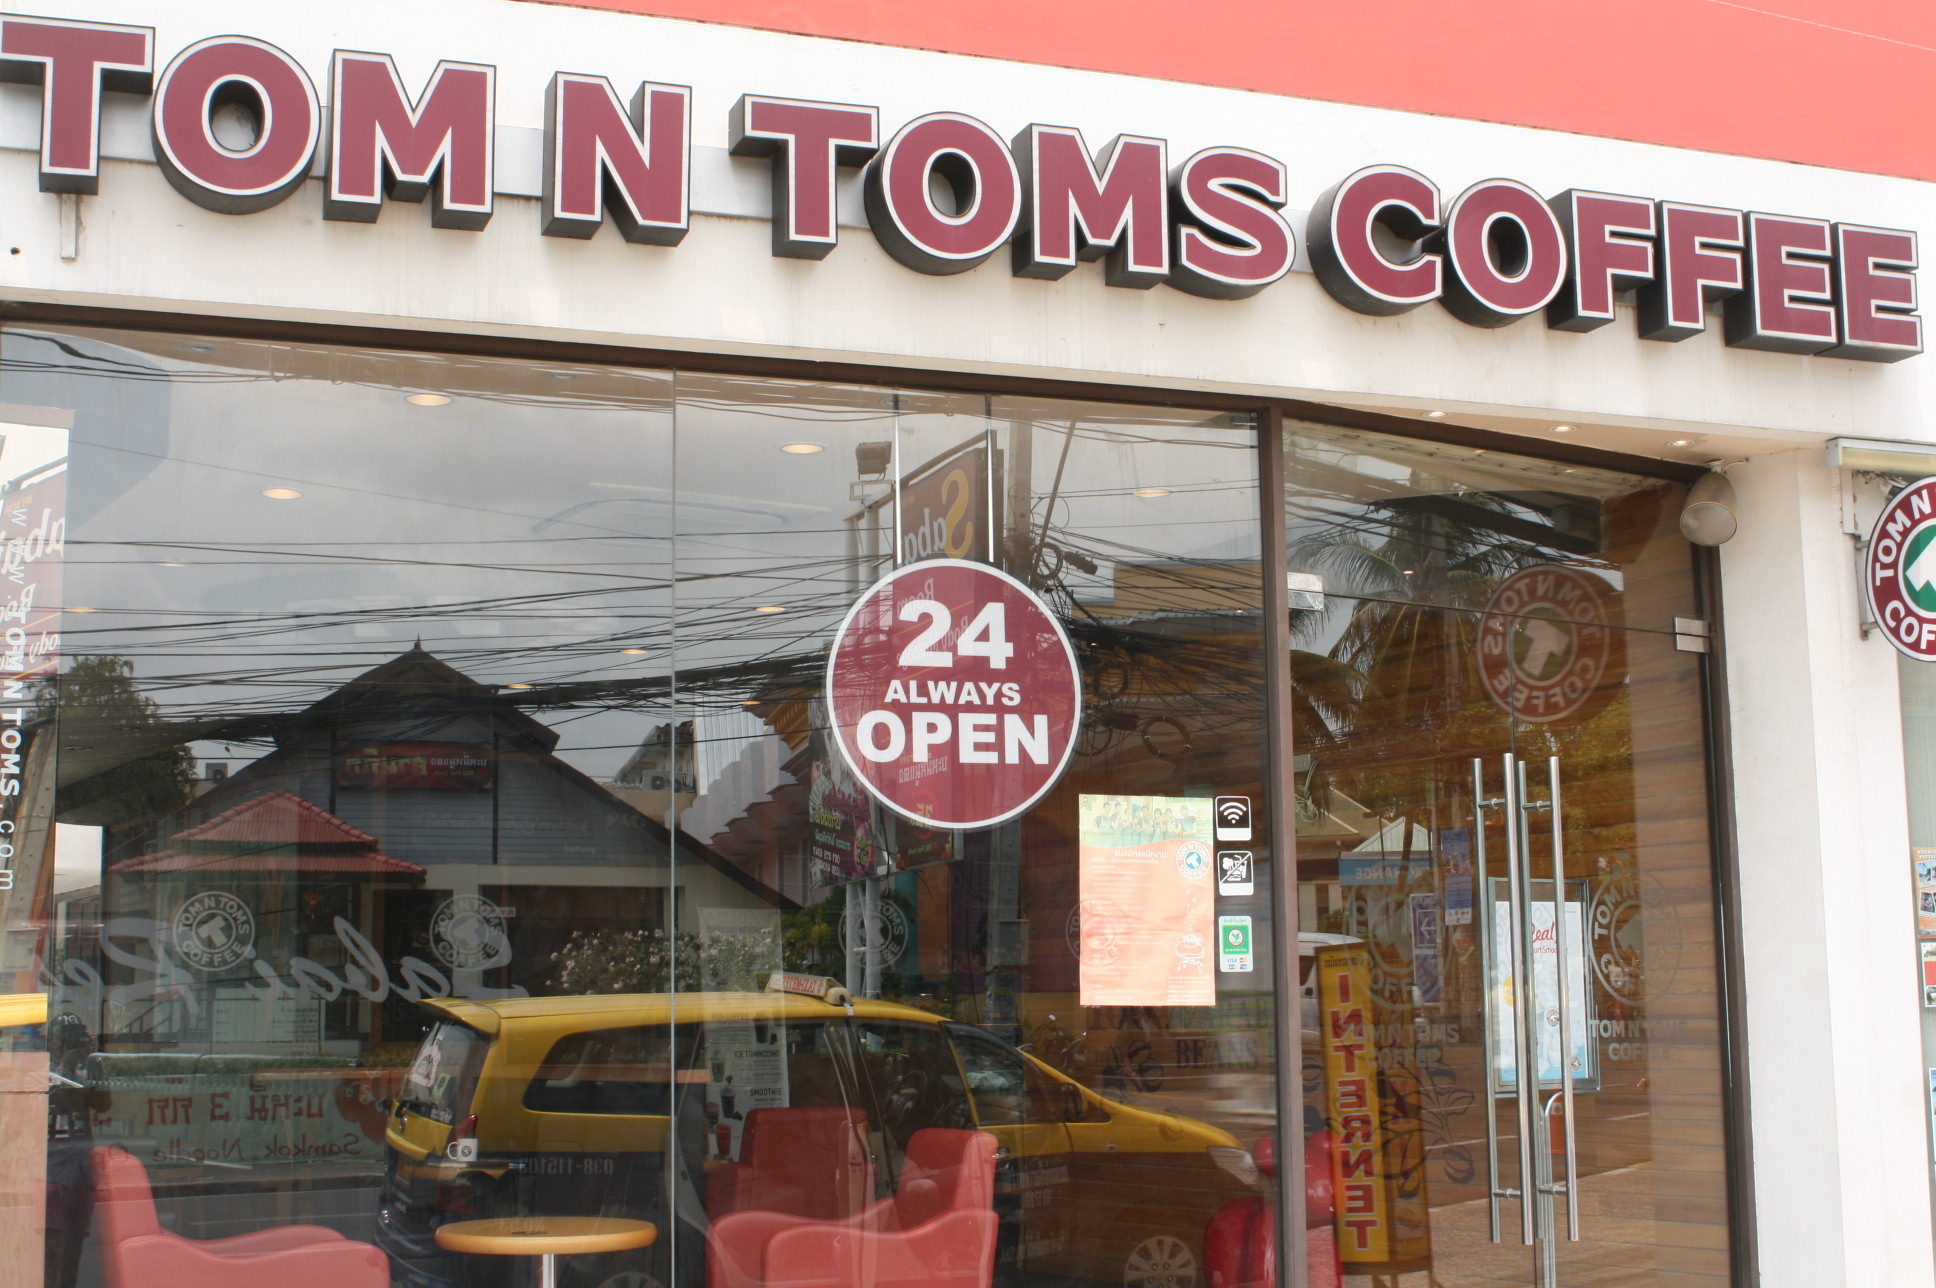 TOMN TOMS COFFEE